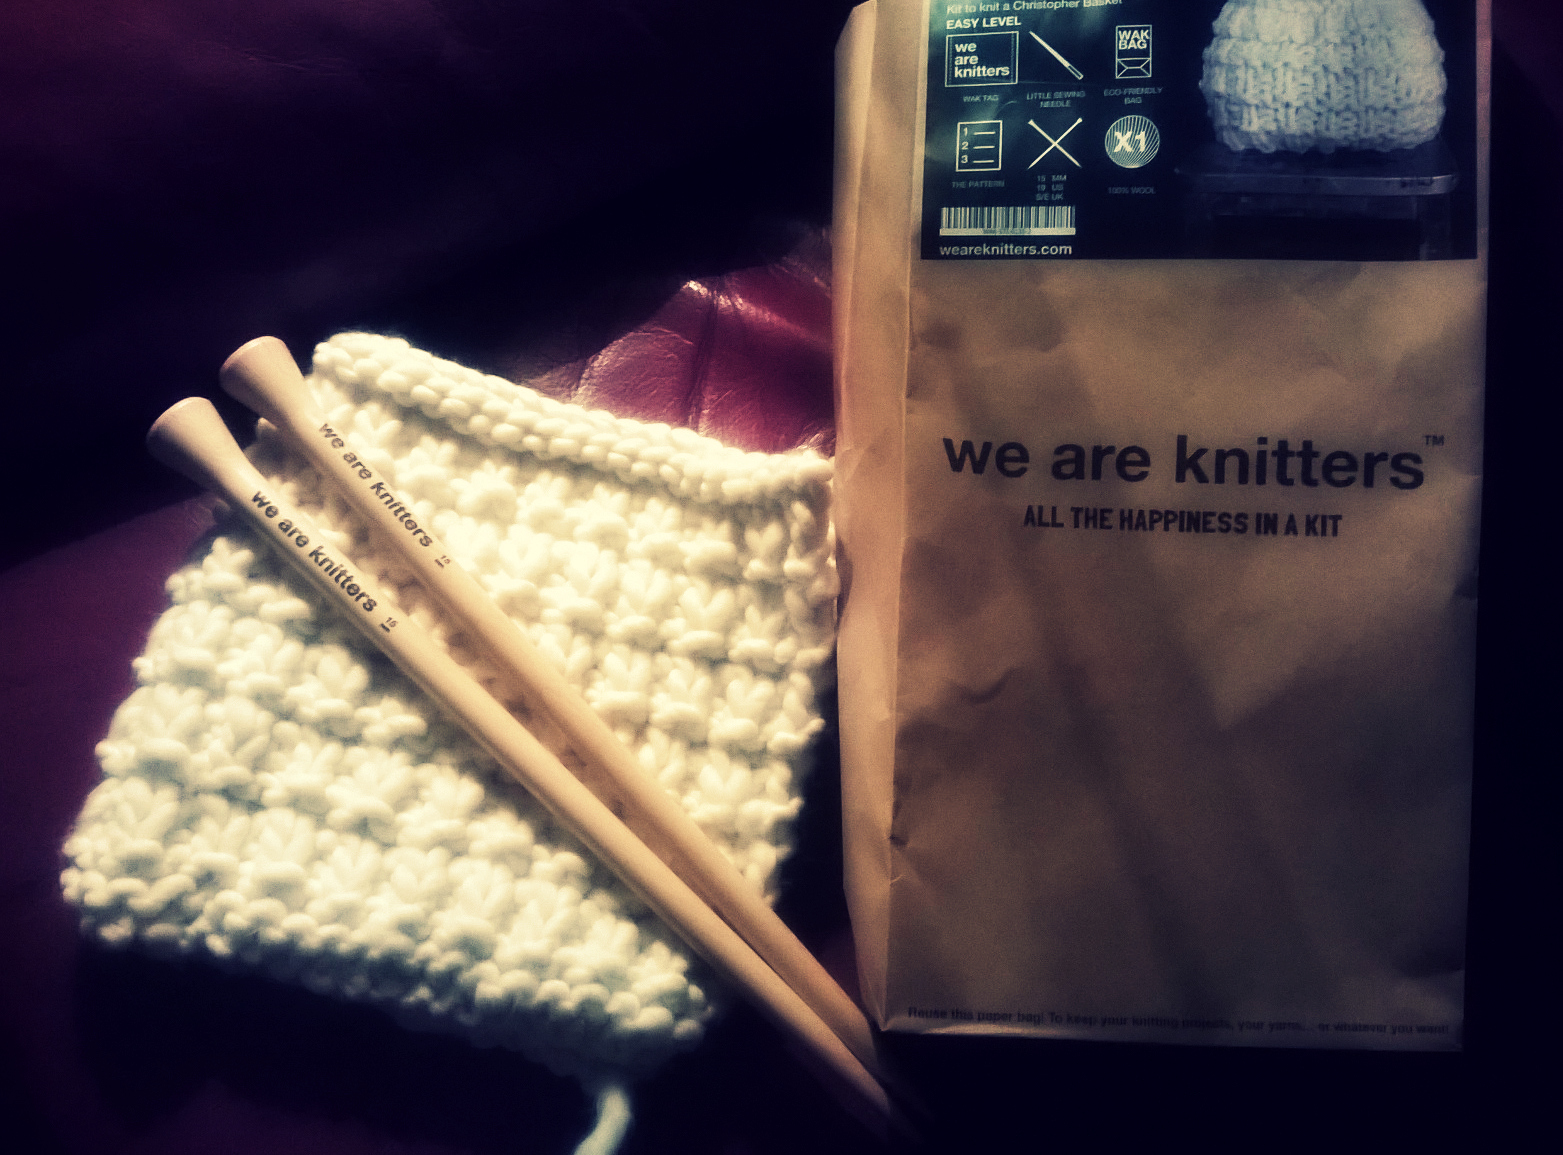 cesto We are knitters por la mitad